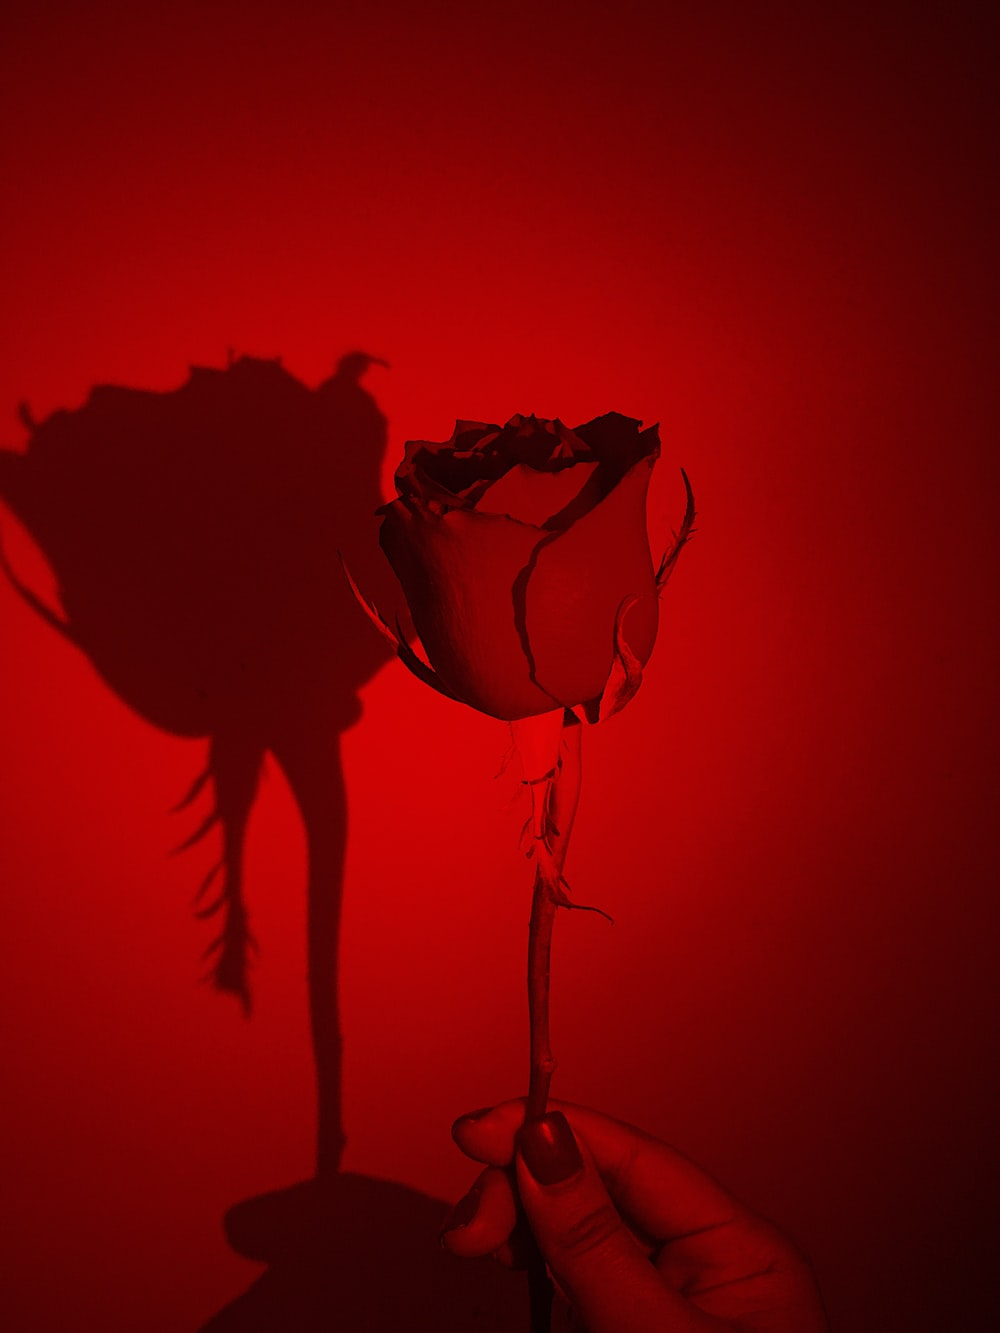 red rose with red background